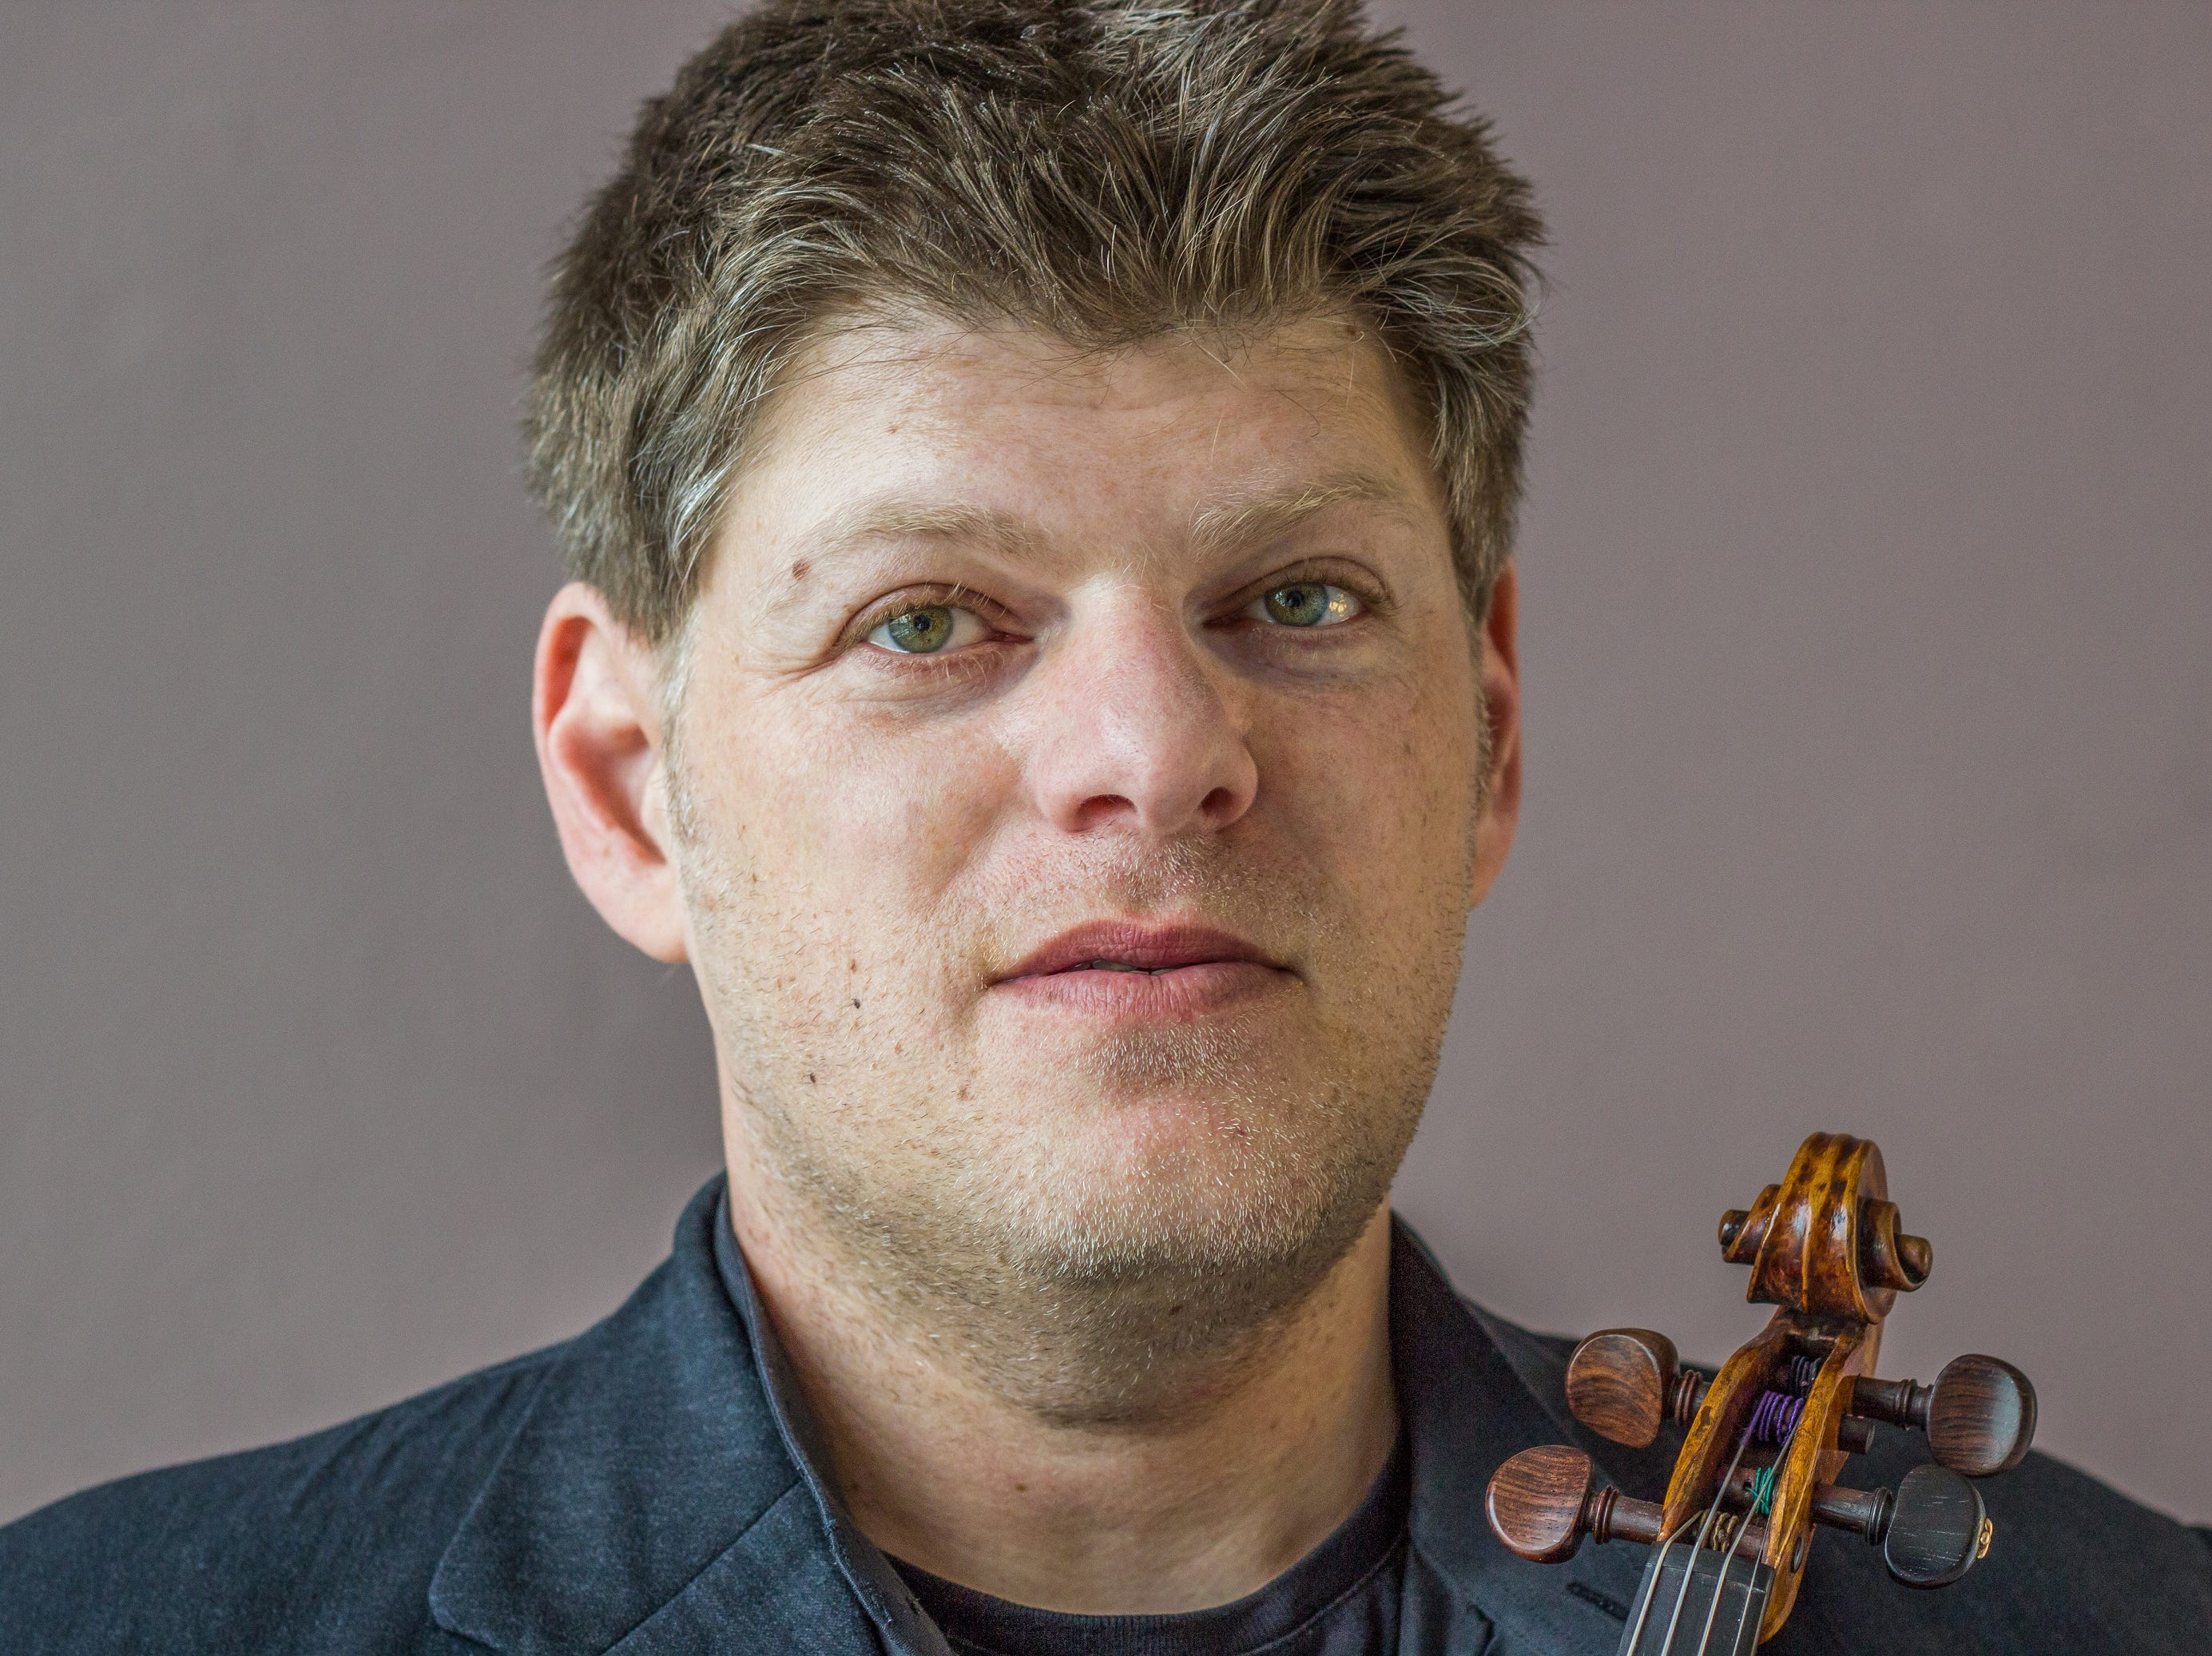 Violinist Guy Braunstein will join the CSO as artist-in-residence during the orchestra's 2019-2020 season.